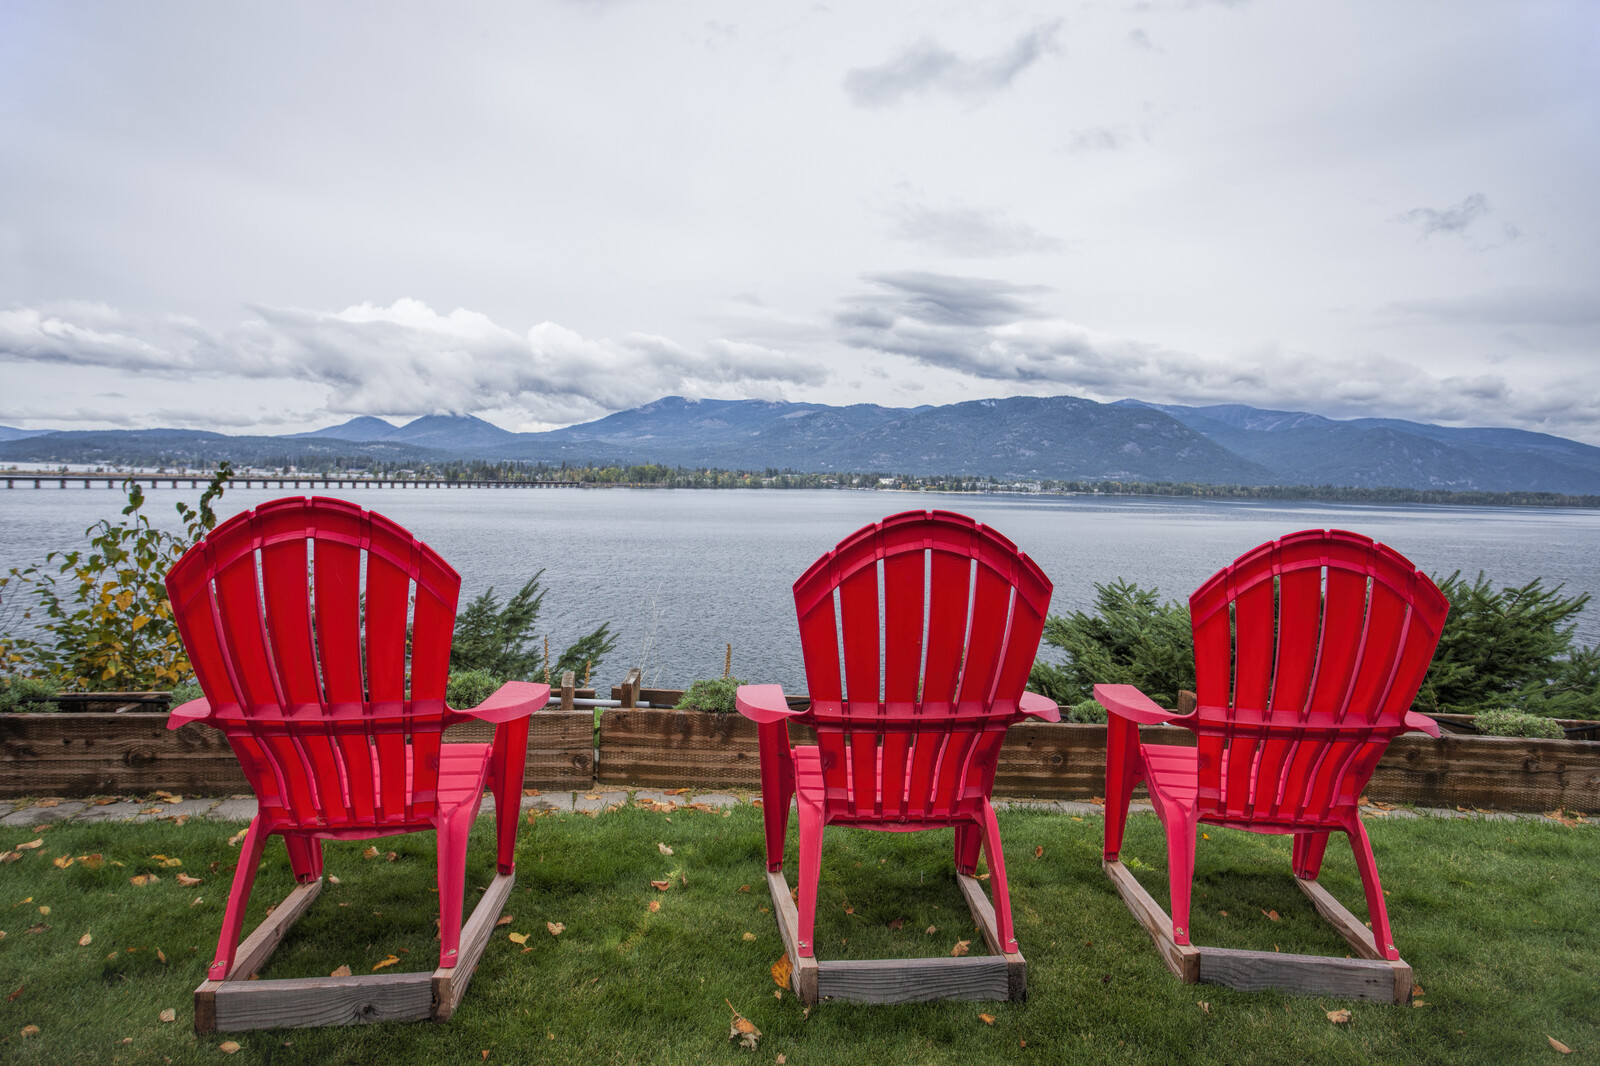 Three red lawn chairs sitting on green grass, overlooking the lake and mountain with grayish skies and white clouds